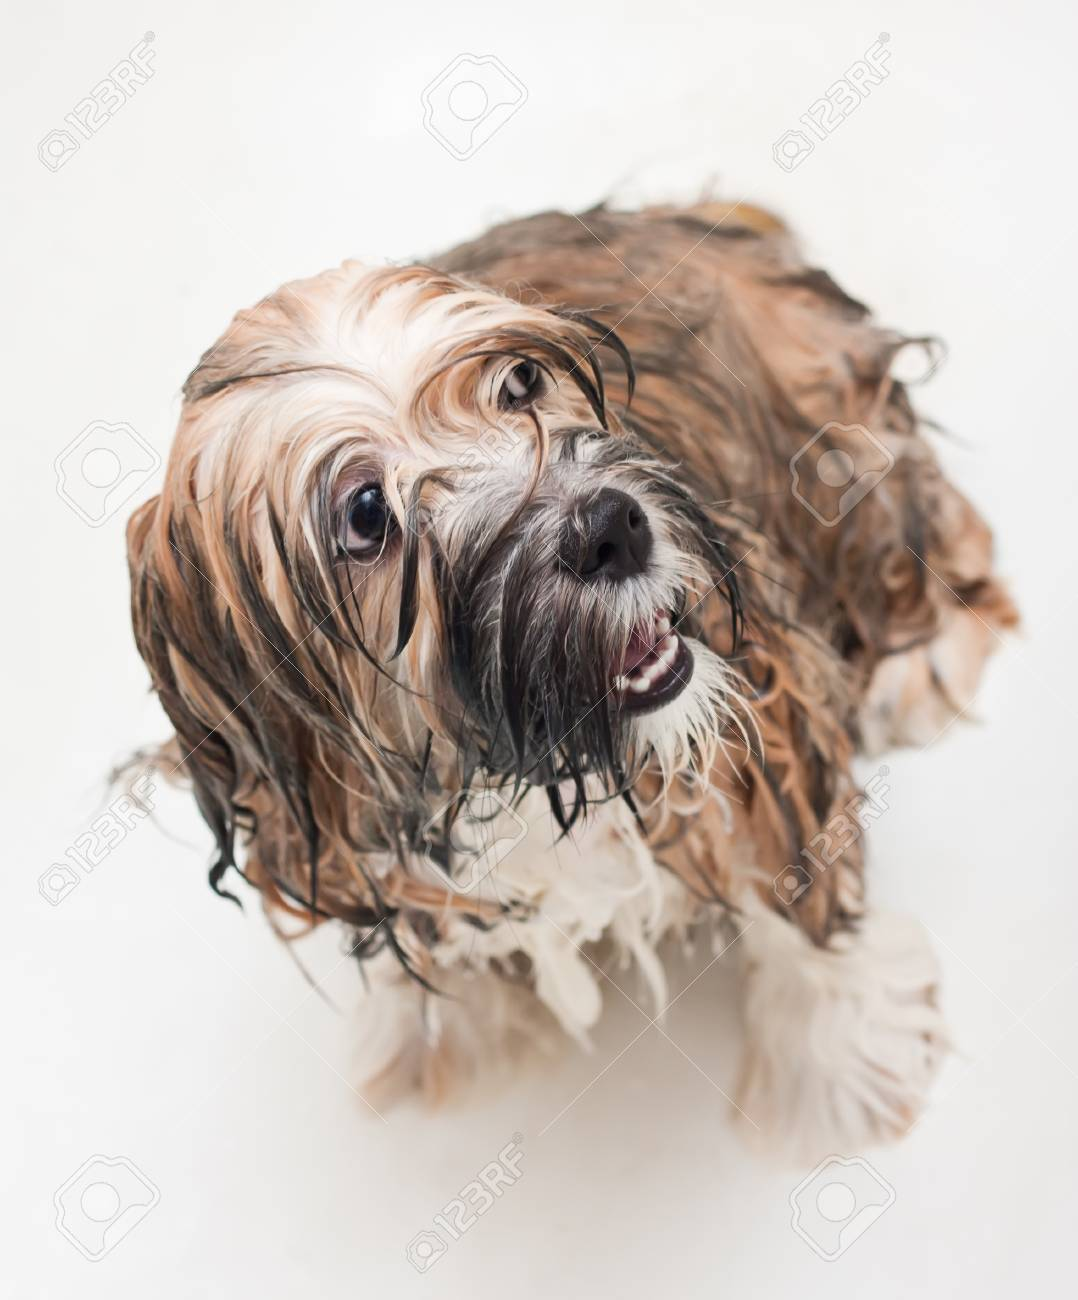 Wet puppy taking a bath on a gray background Stock Photo - 8396509